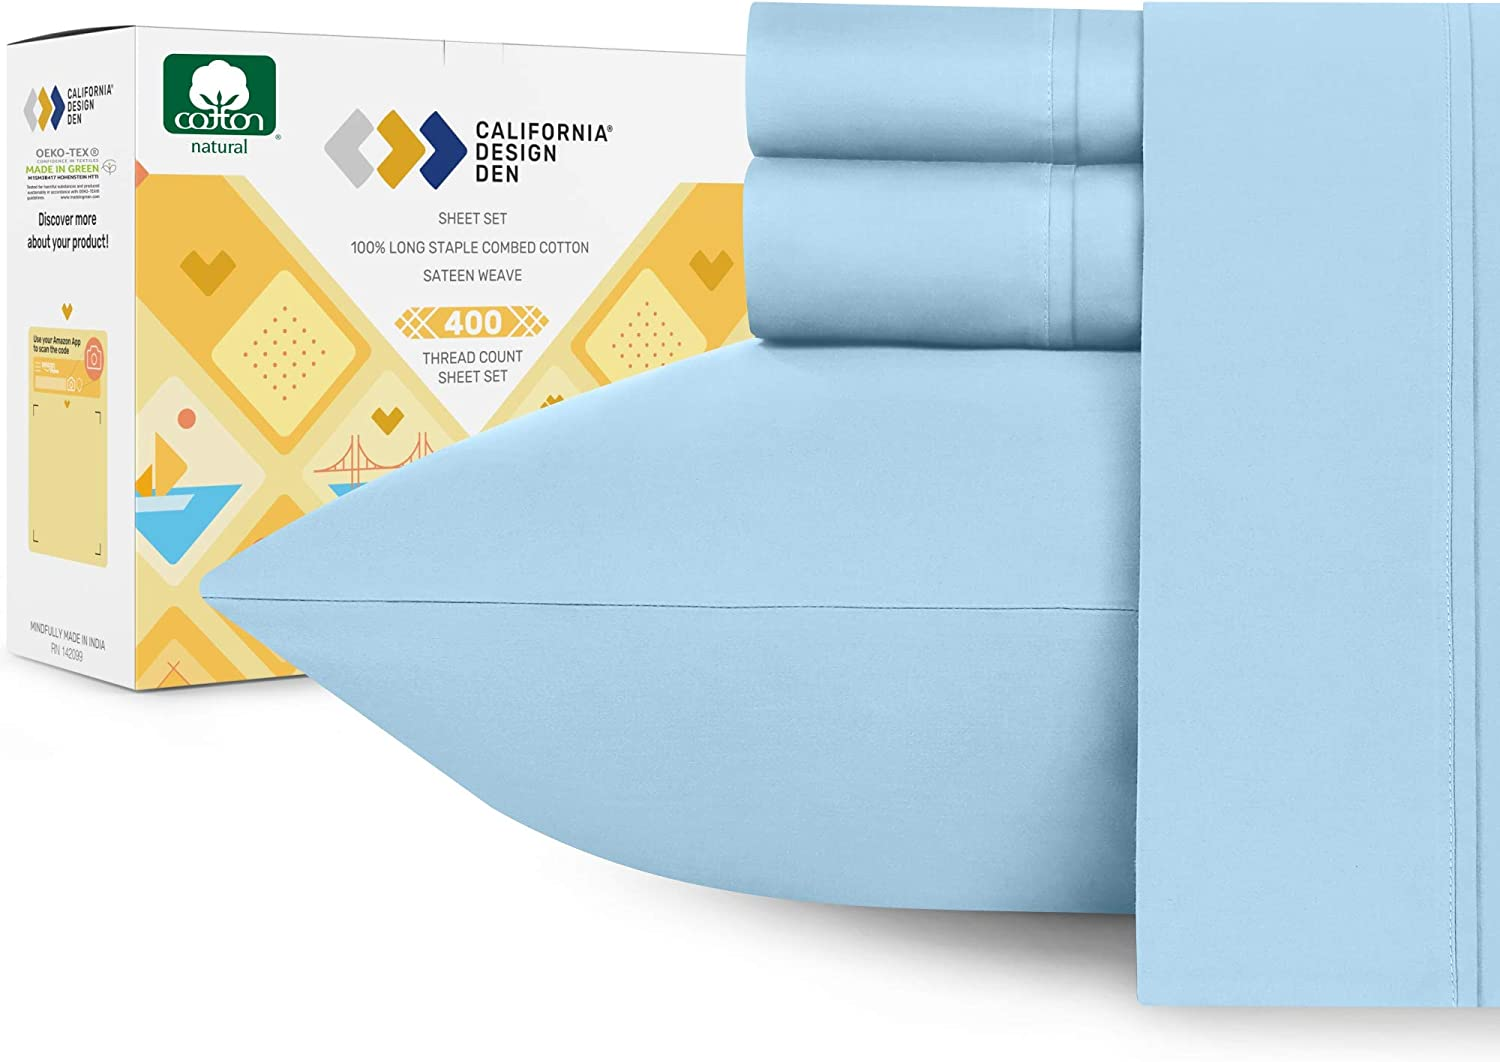 400 Thread Count 100% Cotton Sheet Set, Sky Blue Queen Sheets 4 Piece Set, Long-Staple Combed Pure Natural Cotton Bed Sheets for Bed, Soft & Silky Sateen Weave California Design Den